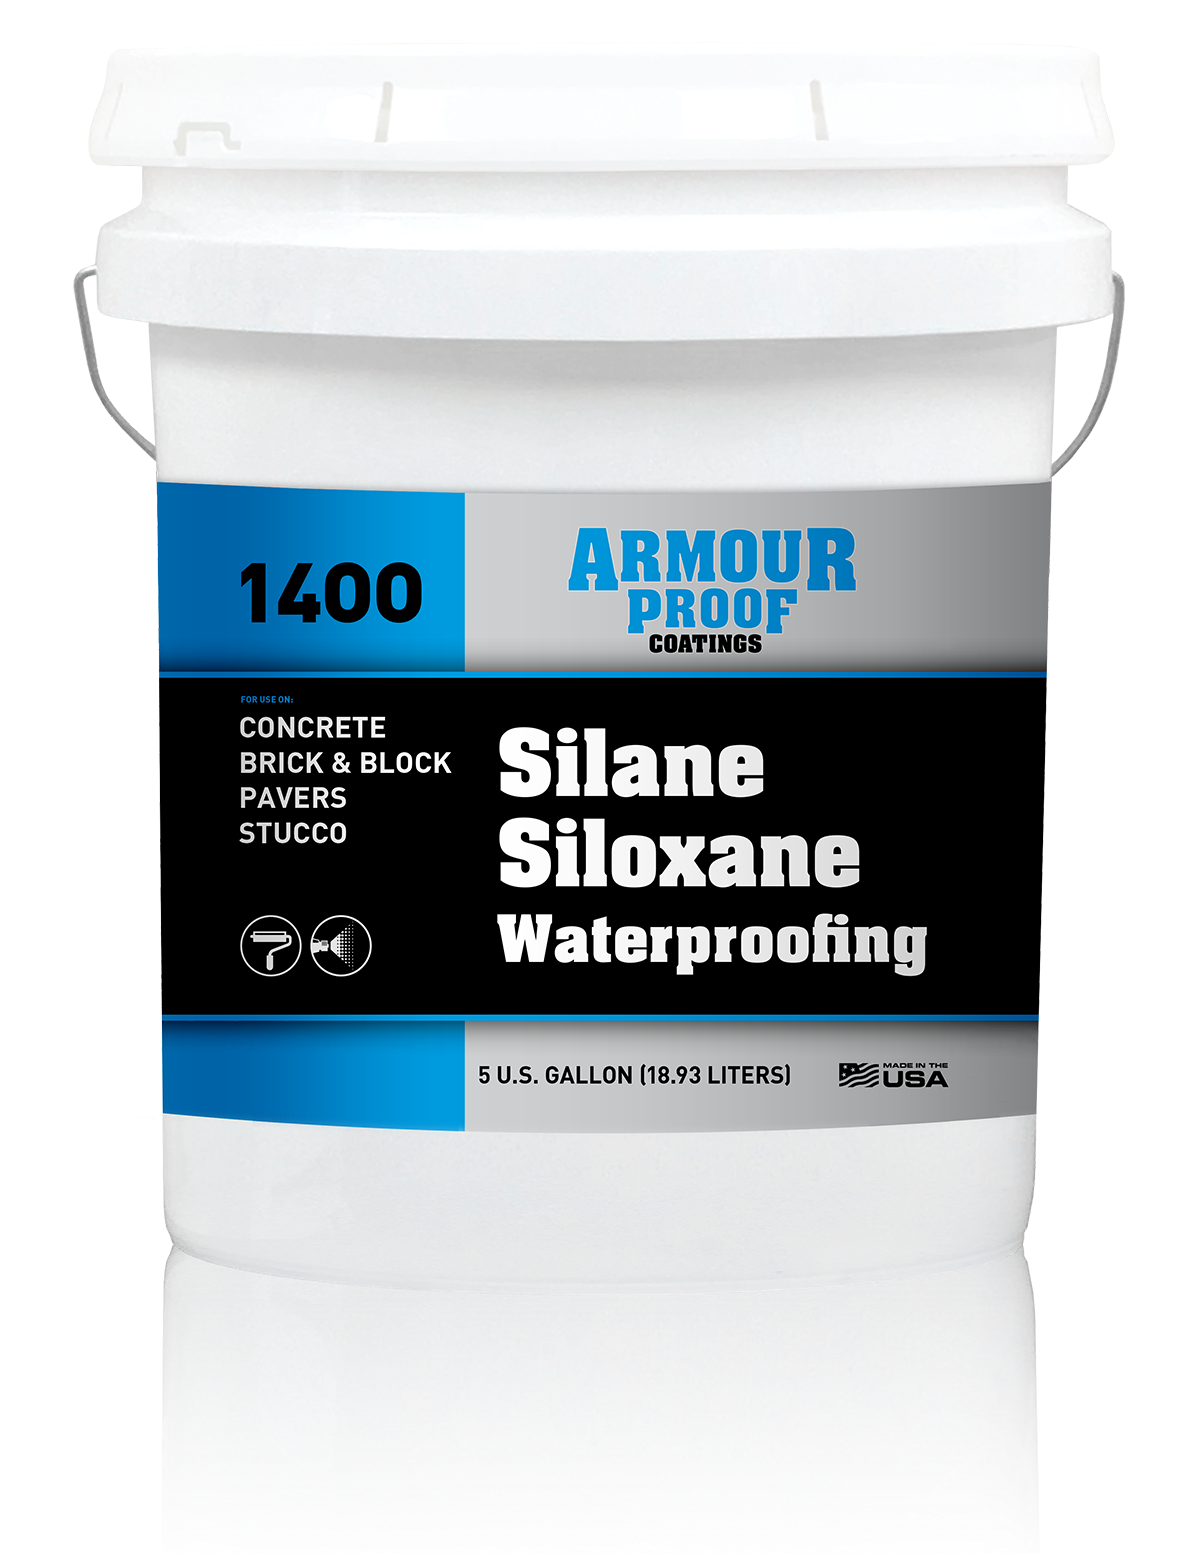 Ap 1400 Silane Siloxane Waterproofing Armour Proof Coatings